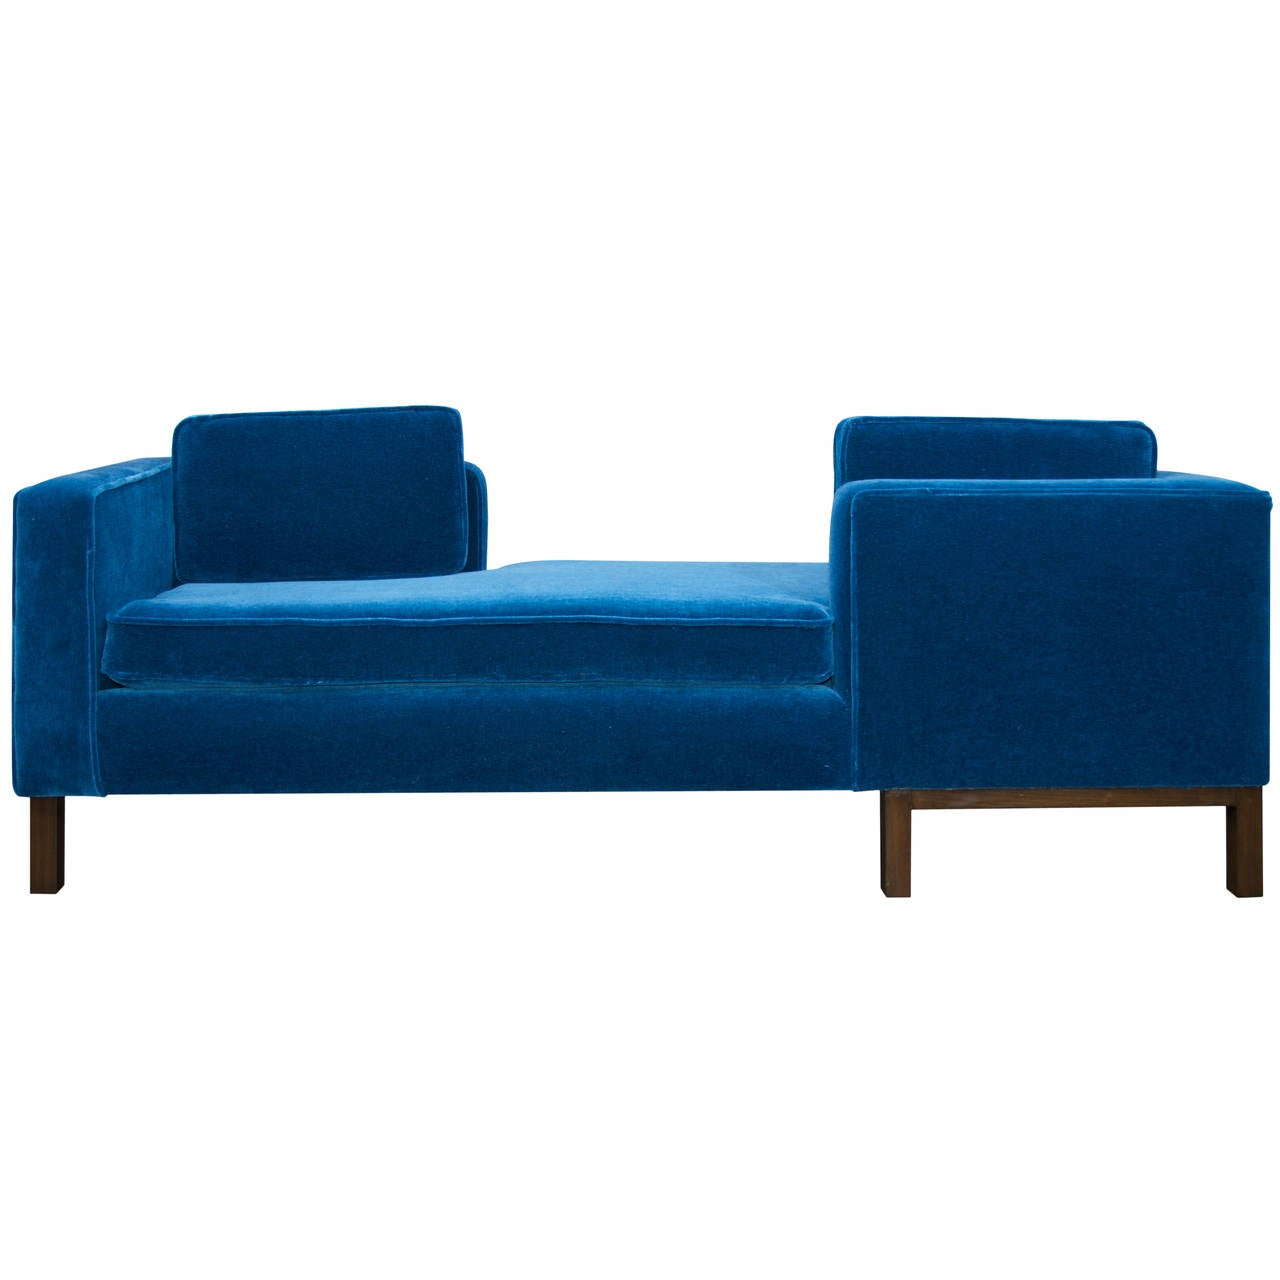 1970s Tete A Tete Sofa Attributed To Harvey Probber At 1stdibs